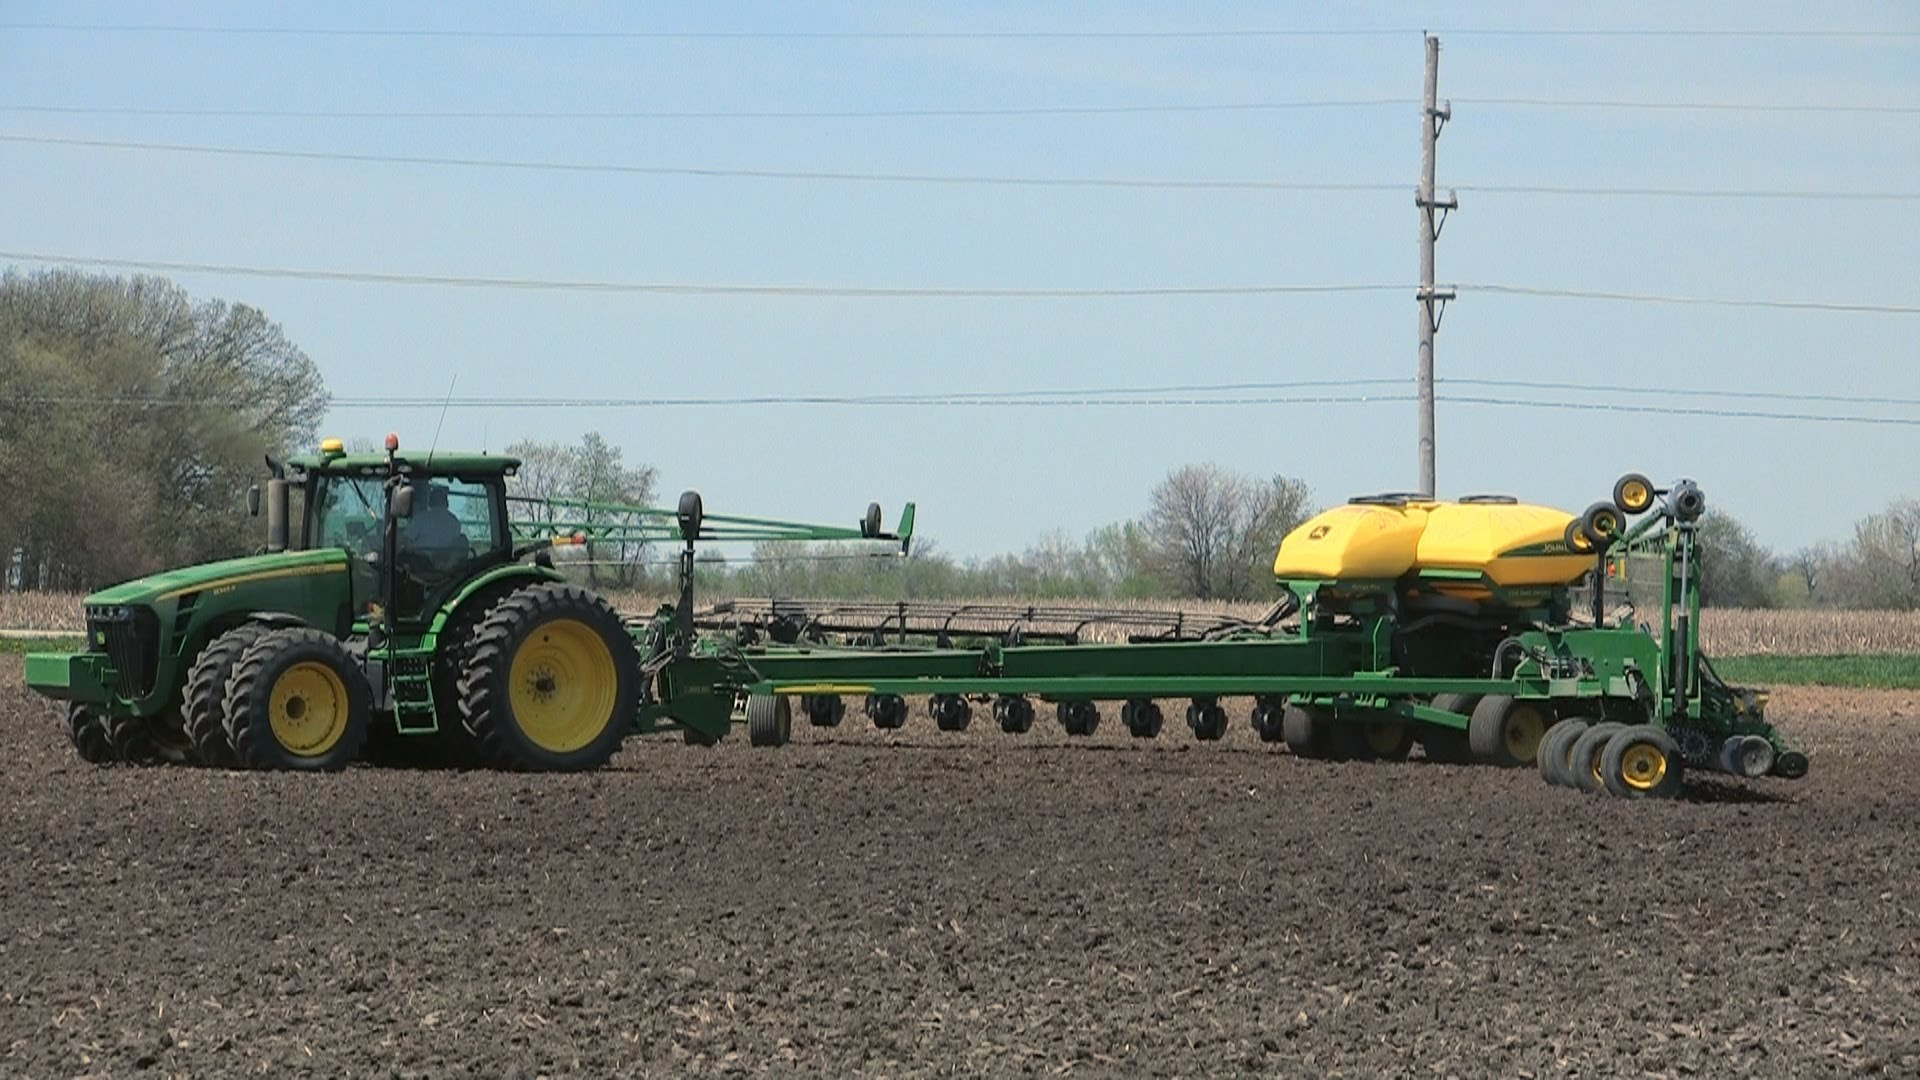 Pitstick Farms - John Deere DB90 Planter Extending and Loading on 5-7 ...